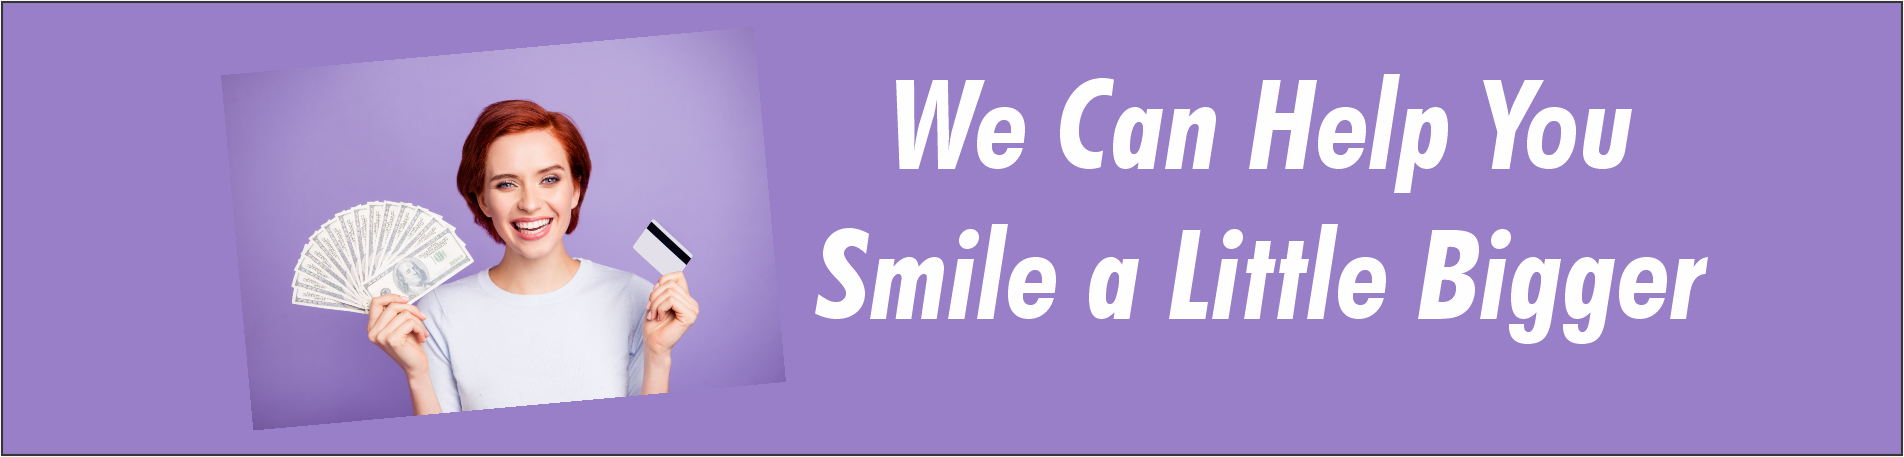 We Can Help You Smile A Little Bigger